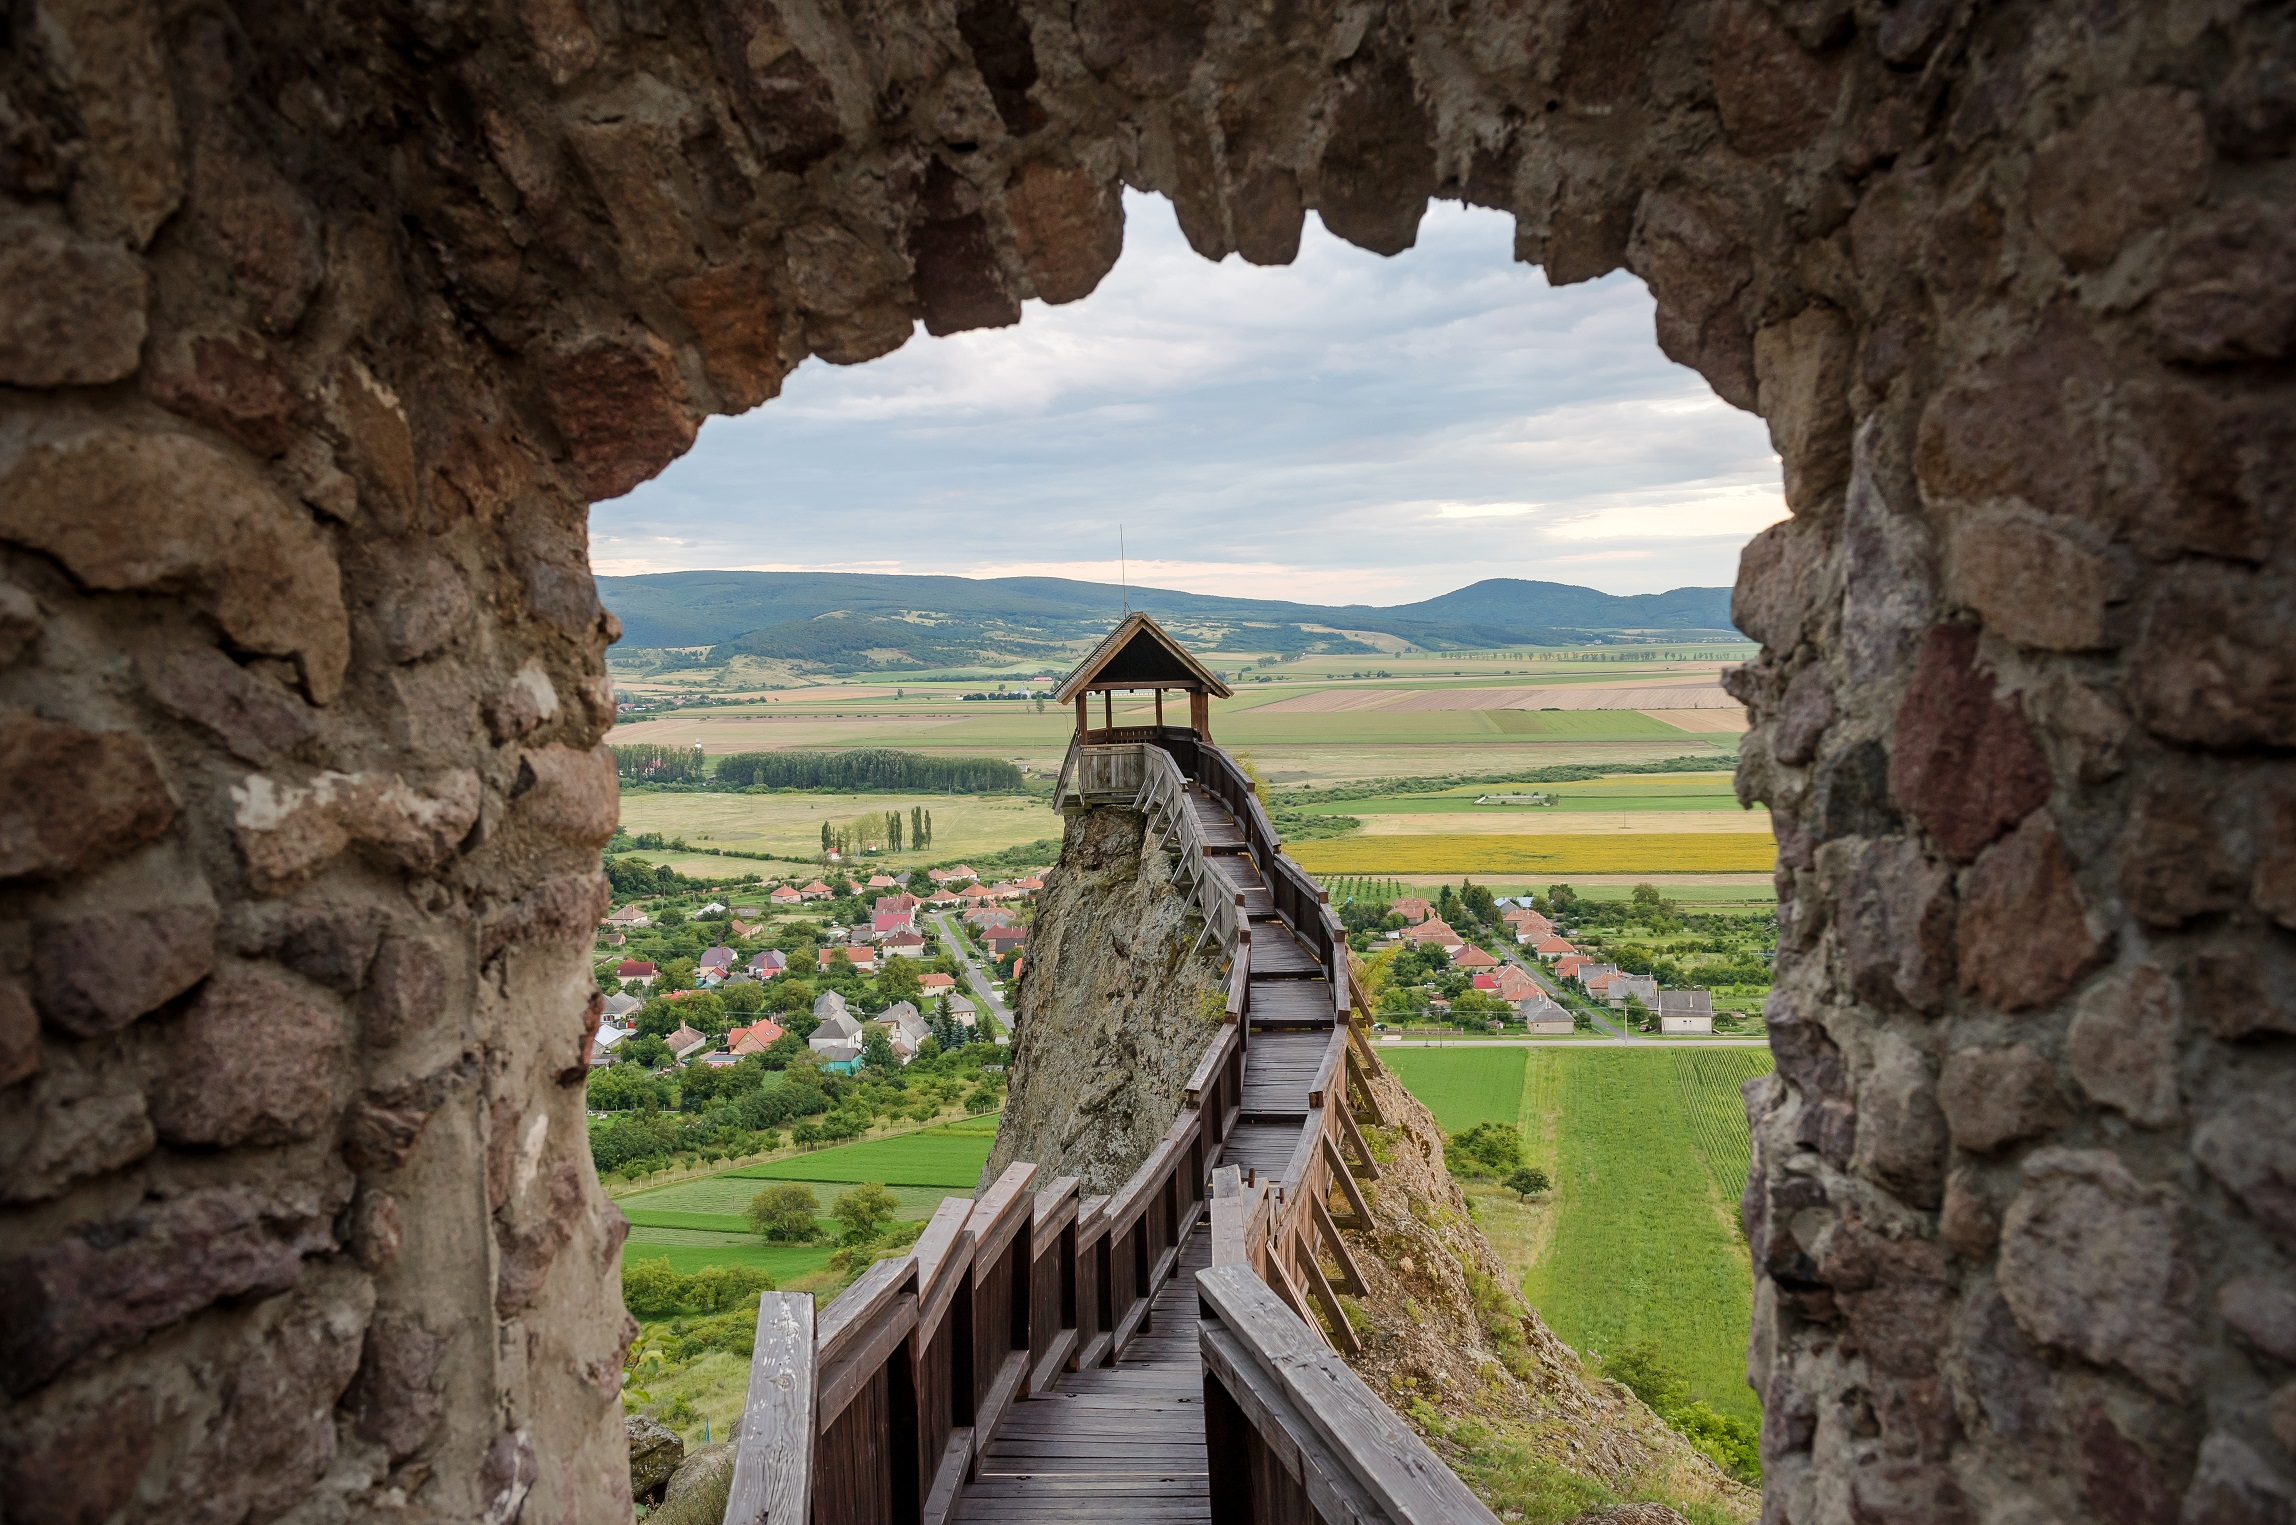 """d8e73a9fa9 ... pilgrimage known as the """"Footsteps of the Wonder Rabbis"""" through 10  settlements, exploring the Jewish memorial and heritage sites of  Tokaj-Hegyalja."""